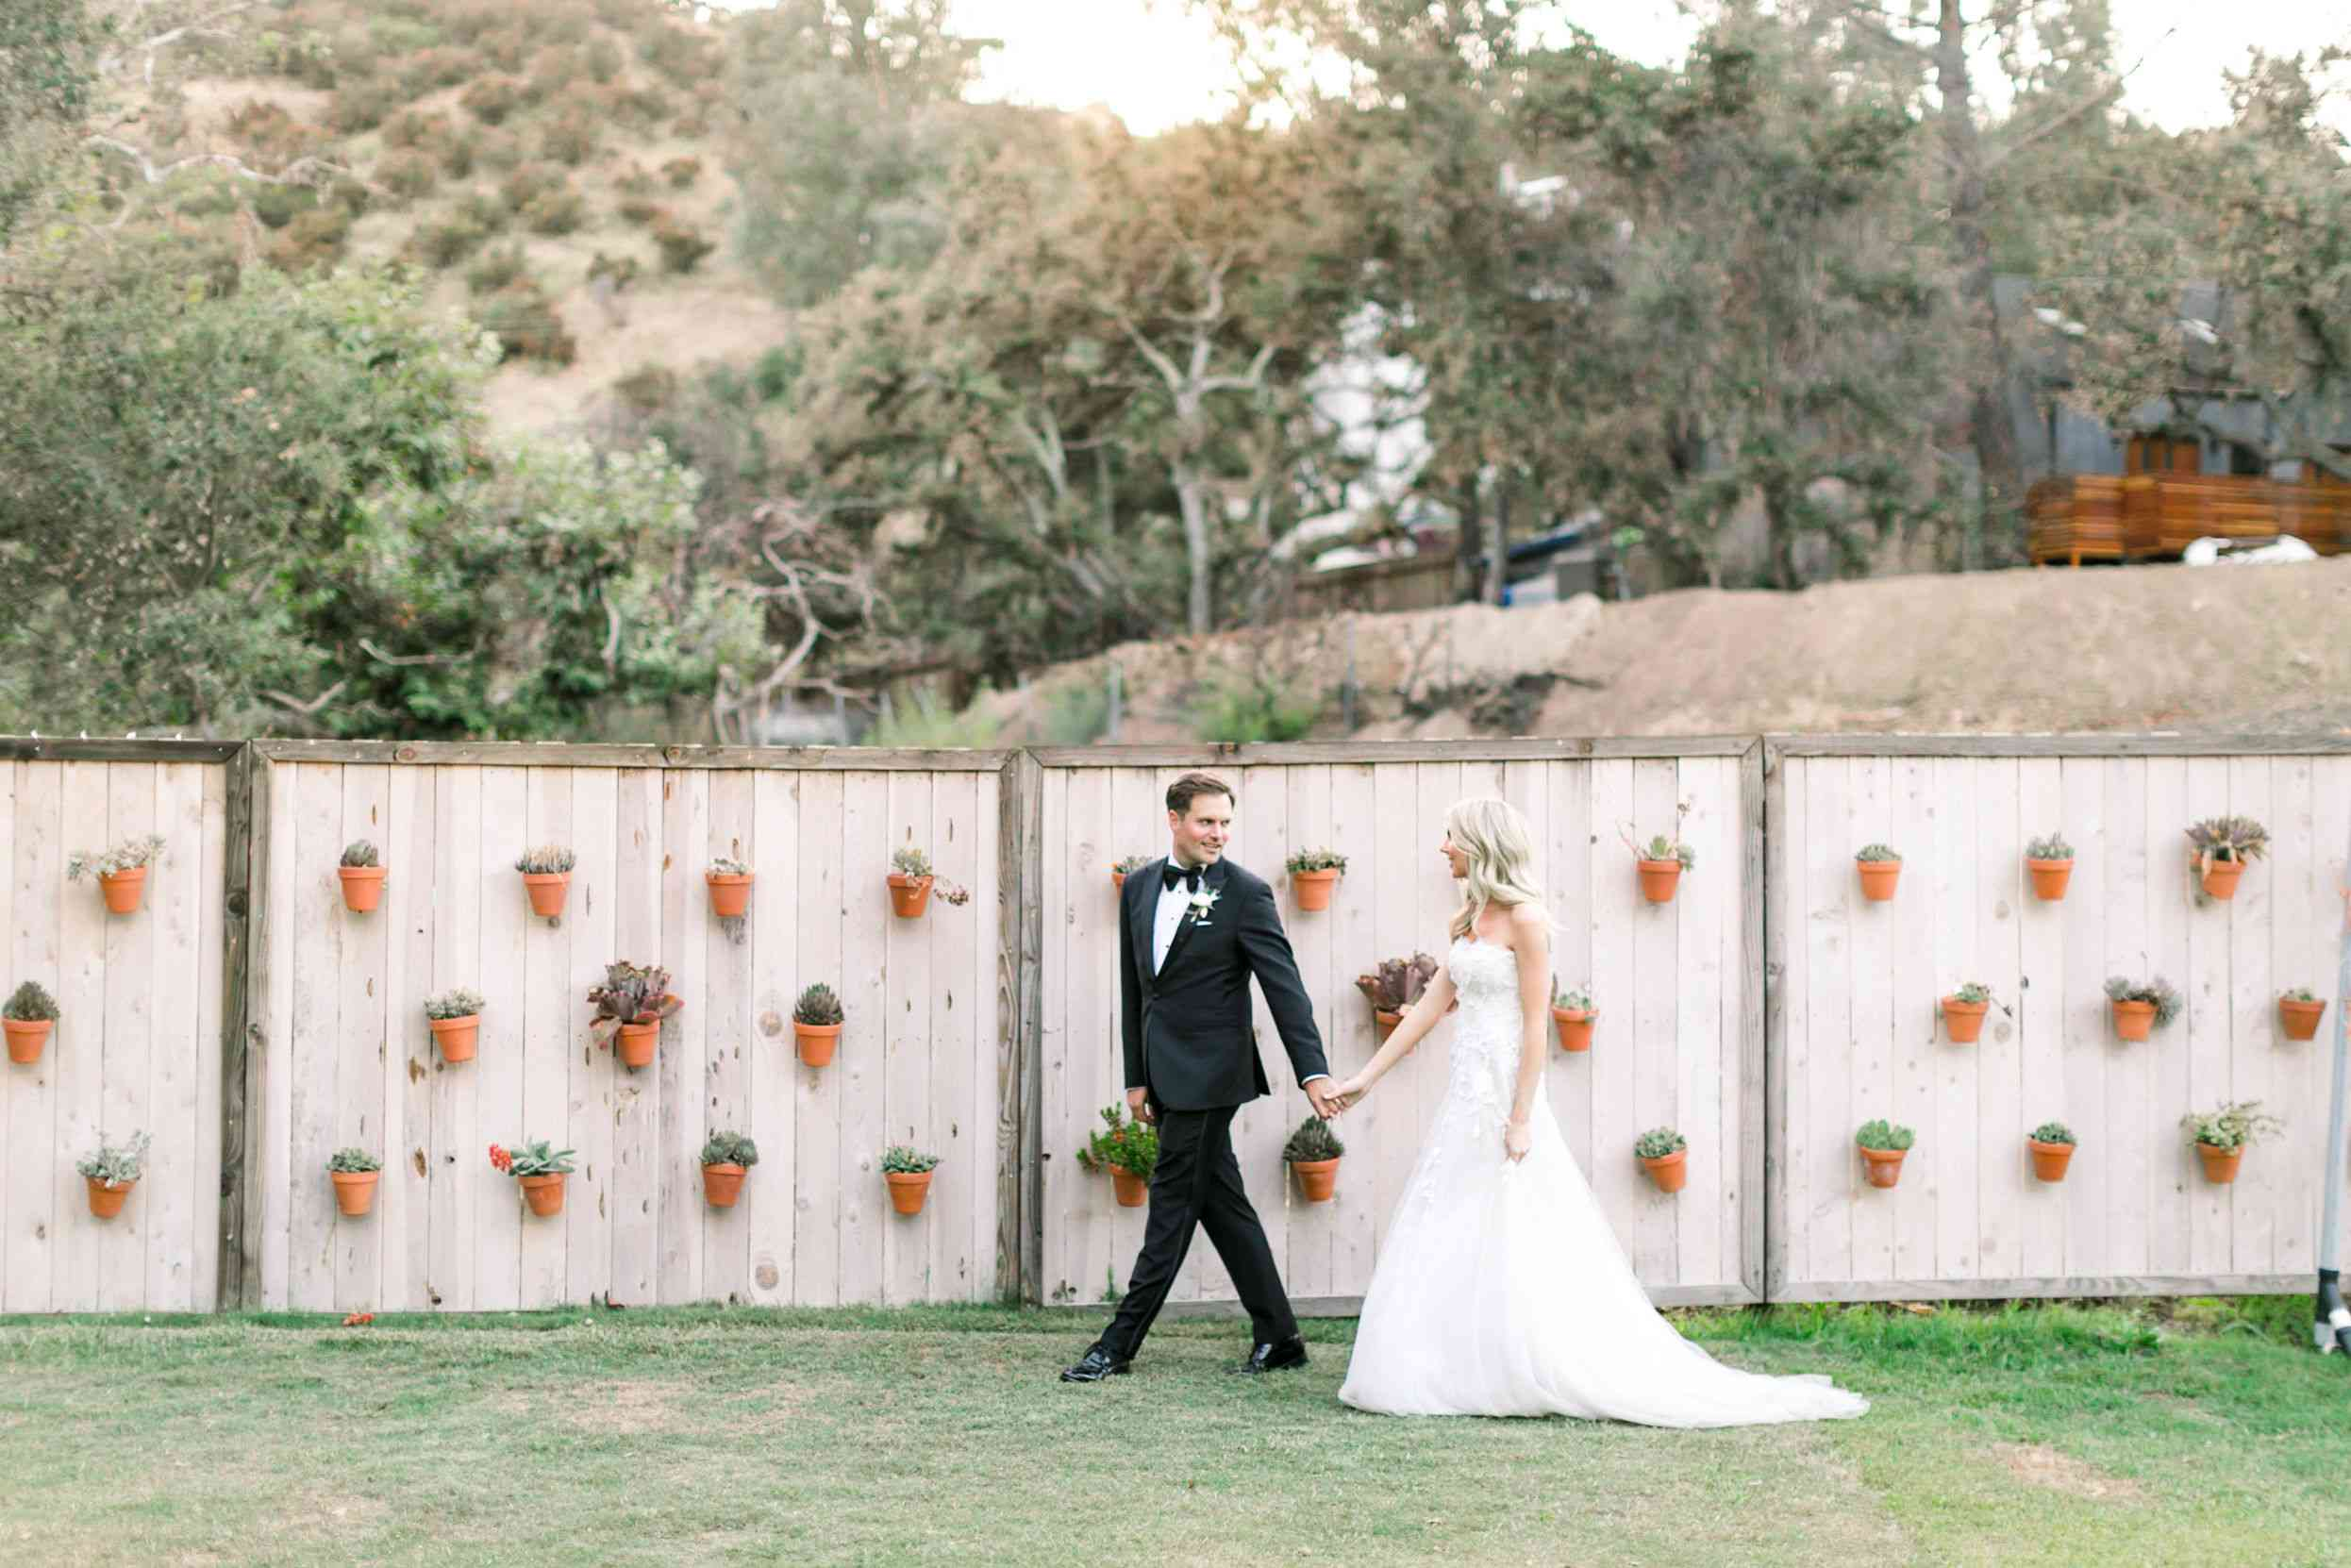 couple walking in front of wall of potted plants